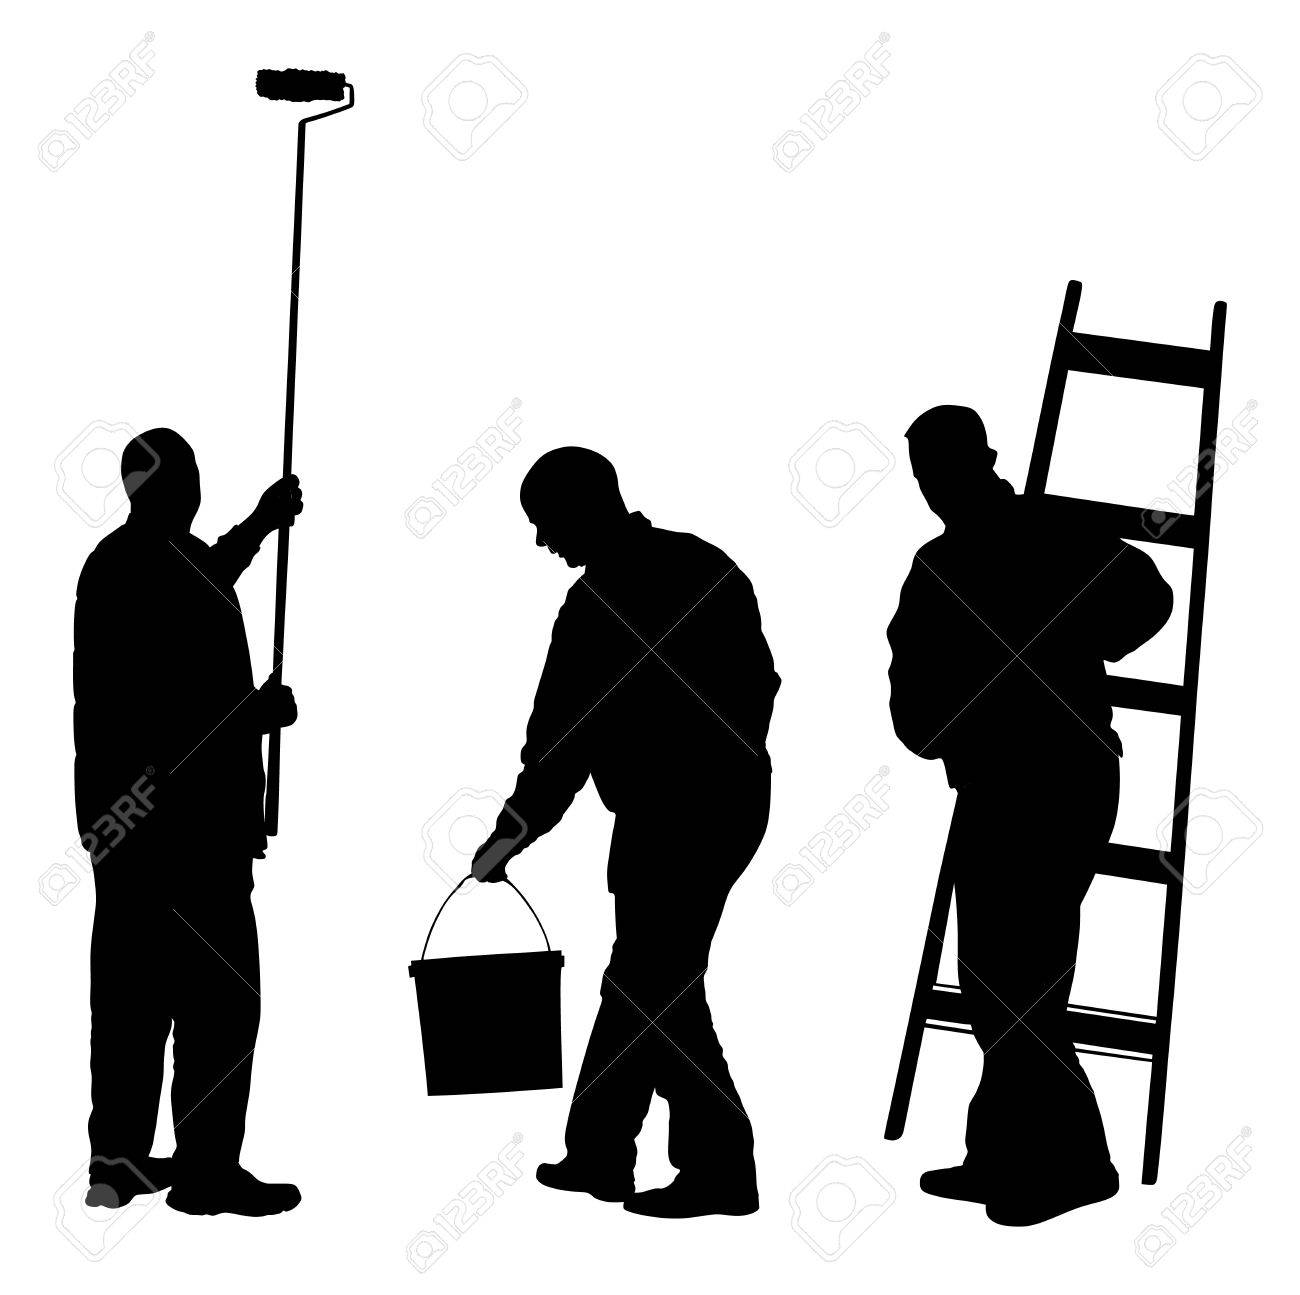 Painters Painting At Work Silhouette Illustration Isolated On